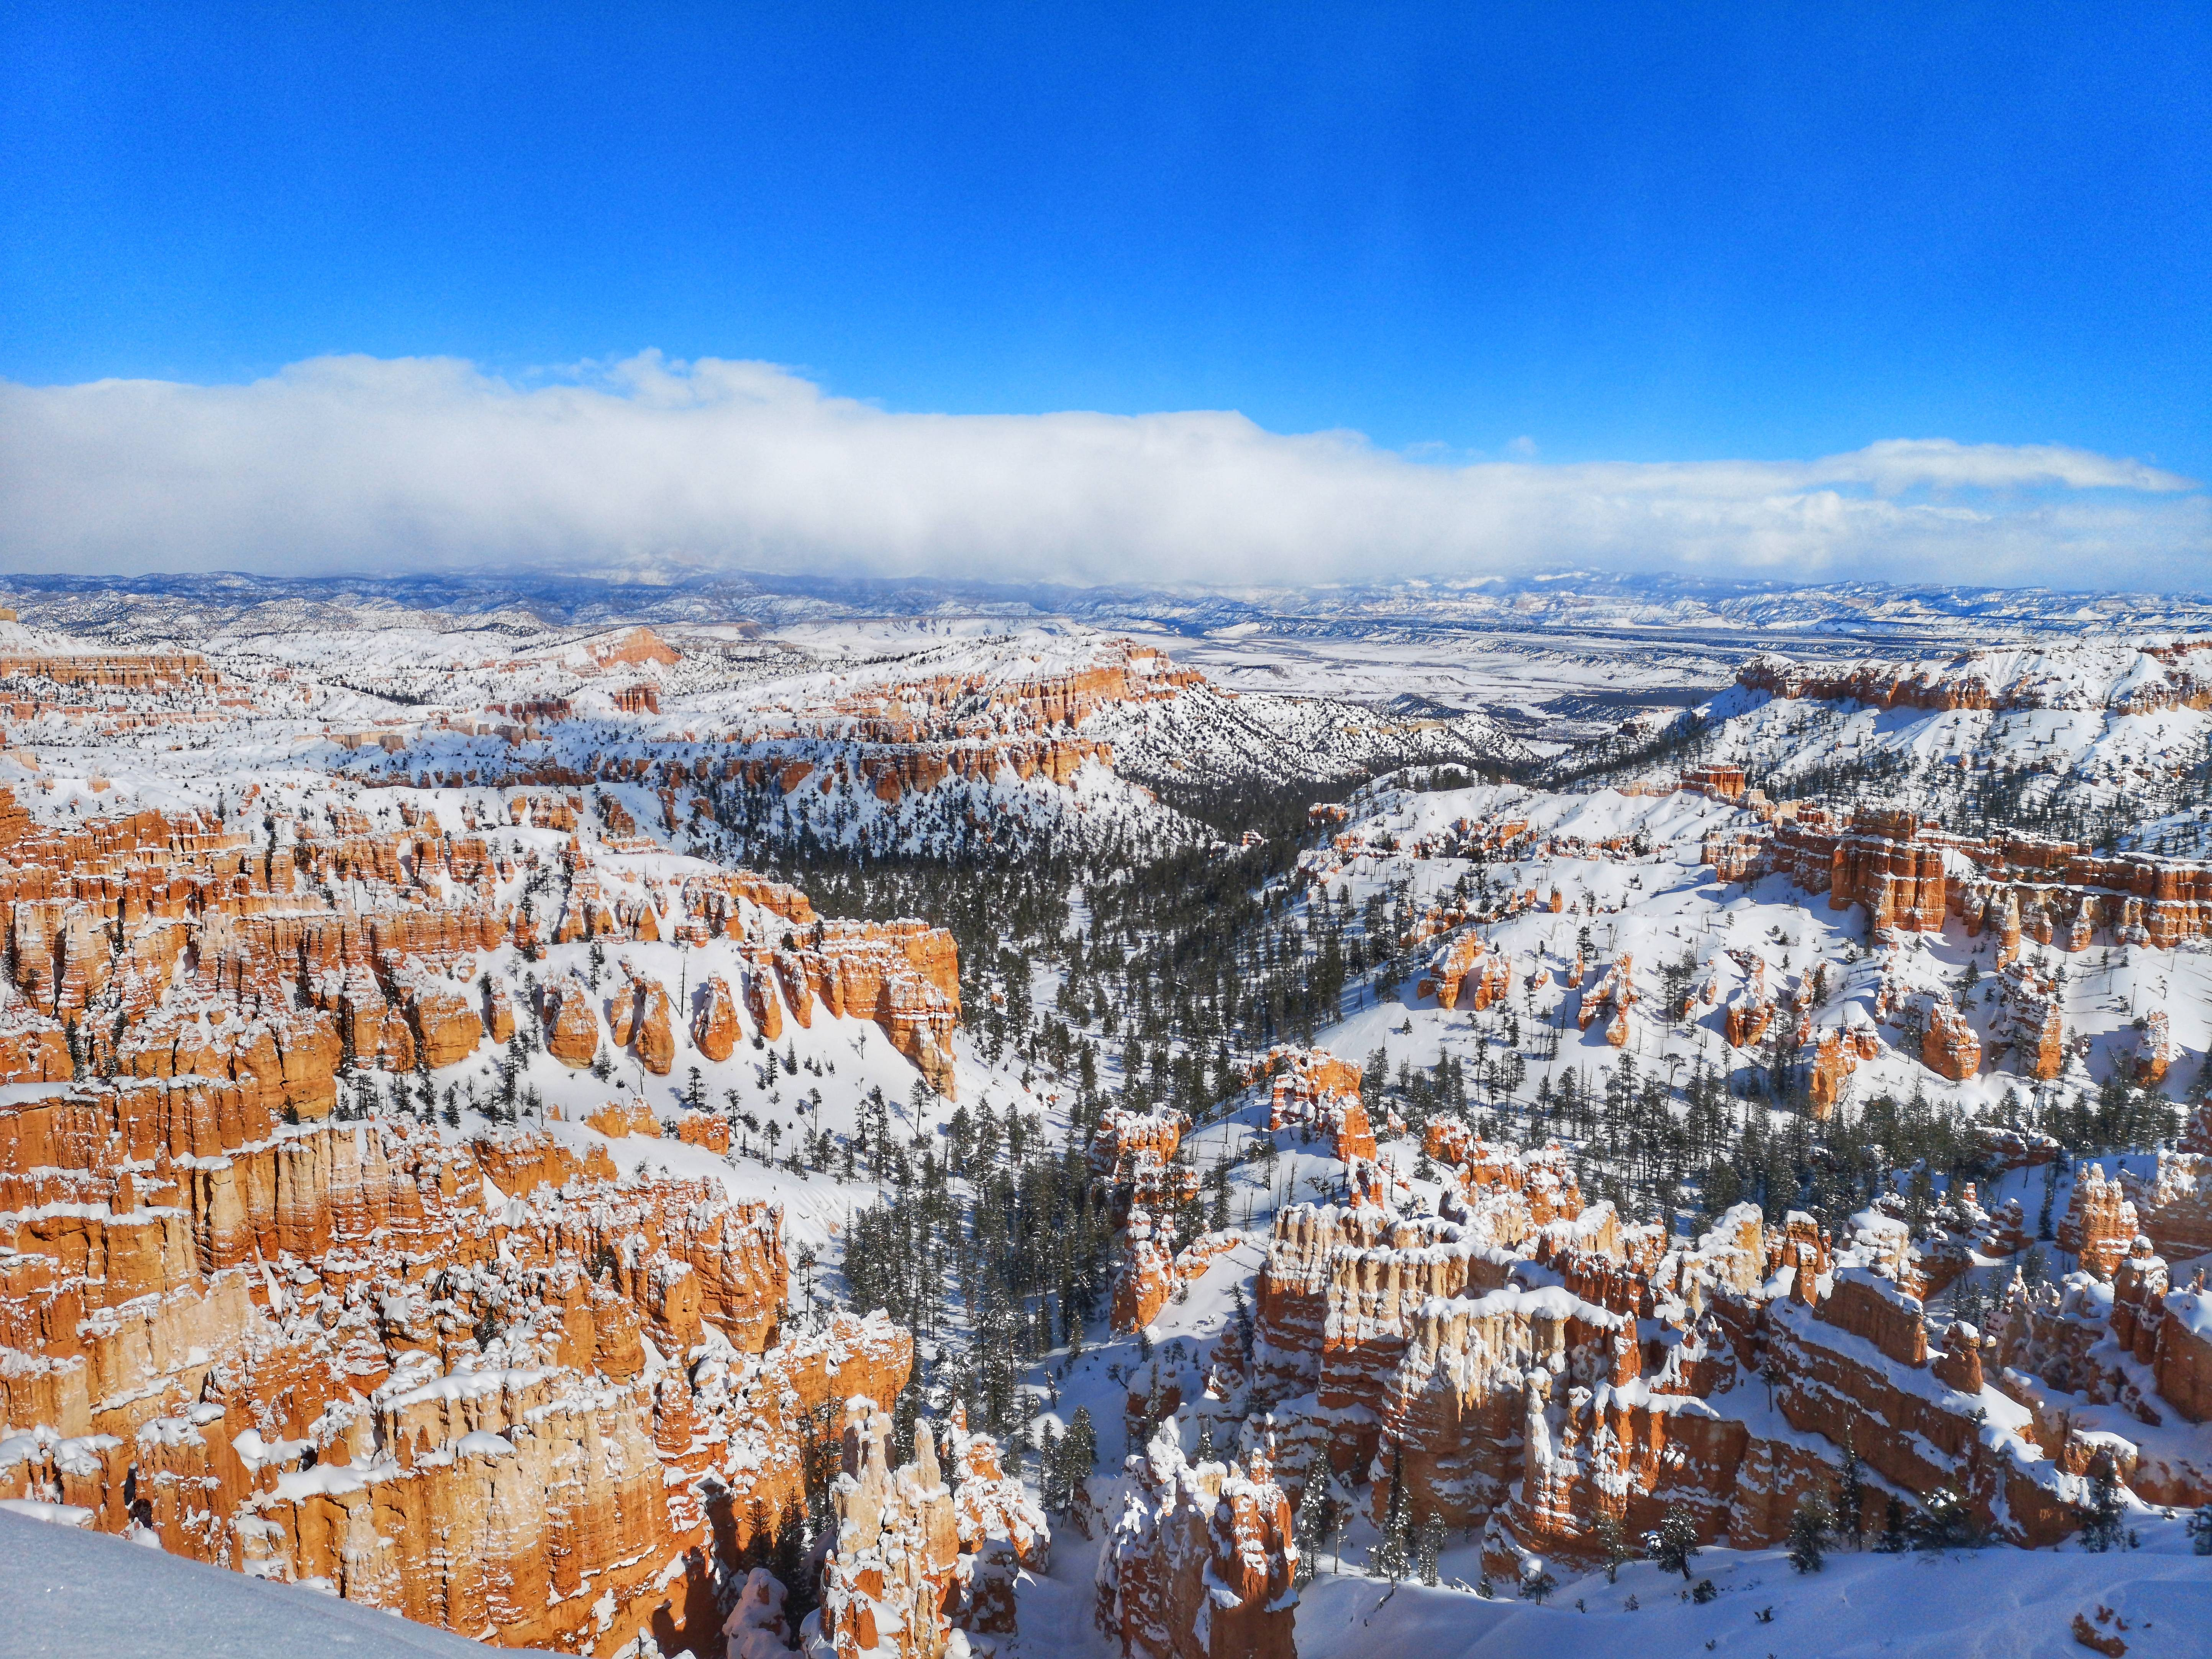 snow at bryce canyon national park 1574939450 - Snow At Bryce Canyon National Park -